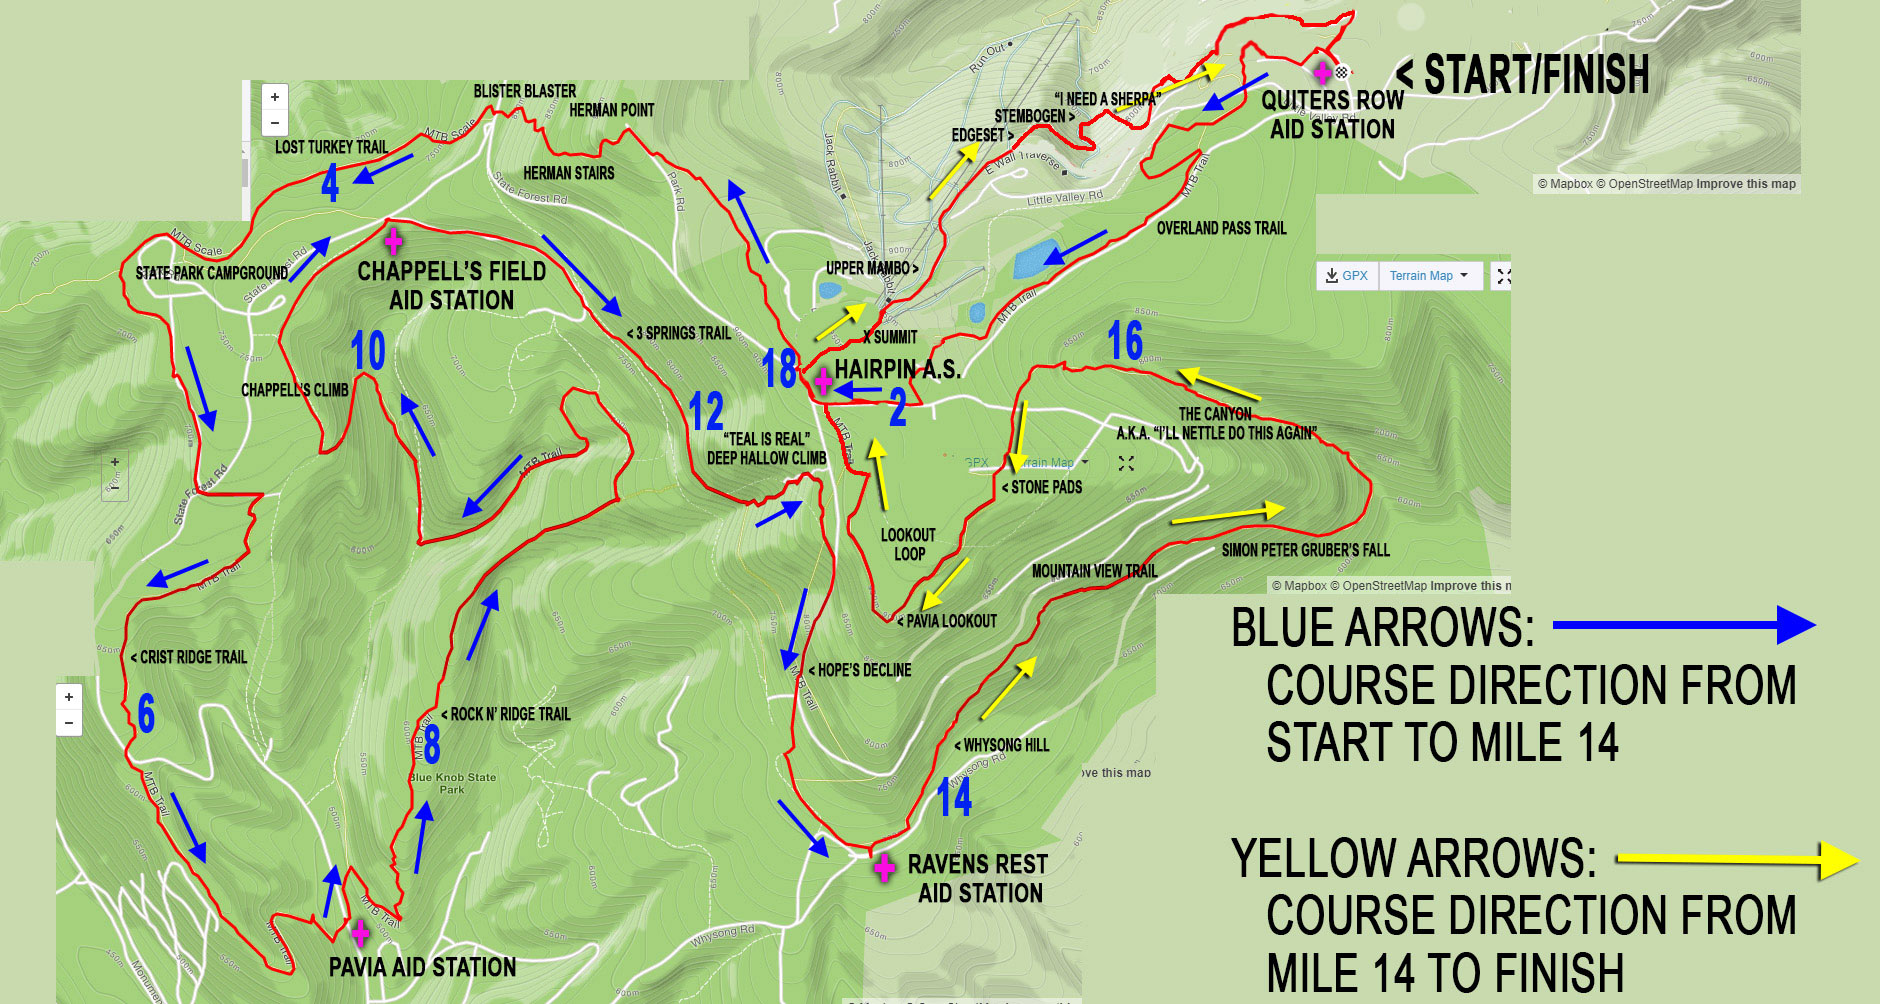 Marathon Course Map and Charts – Allegheny Trailrunners on i need an id, i need sunscreen, i need text, i need fire, i need directions, i need hours, i need camera, i need lunch, i need history, i need transportation, i need an eraser, i need address, i need some money, i need an essay, i need contacts, us postal code map, i need water, i need phone numbers, i need an umbrella, bank of america map,